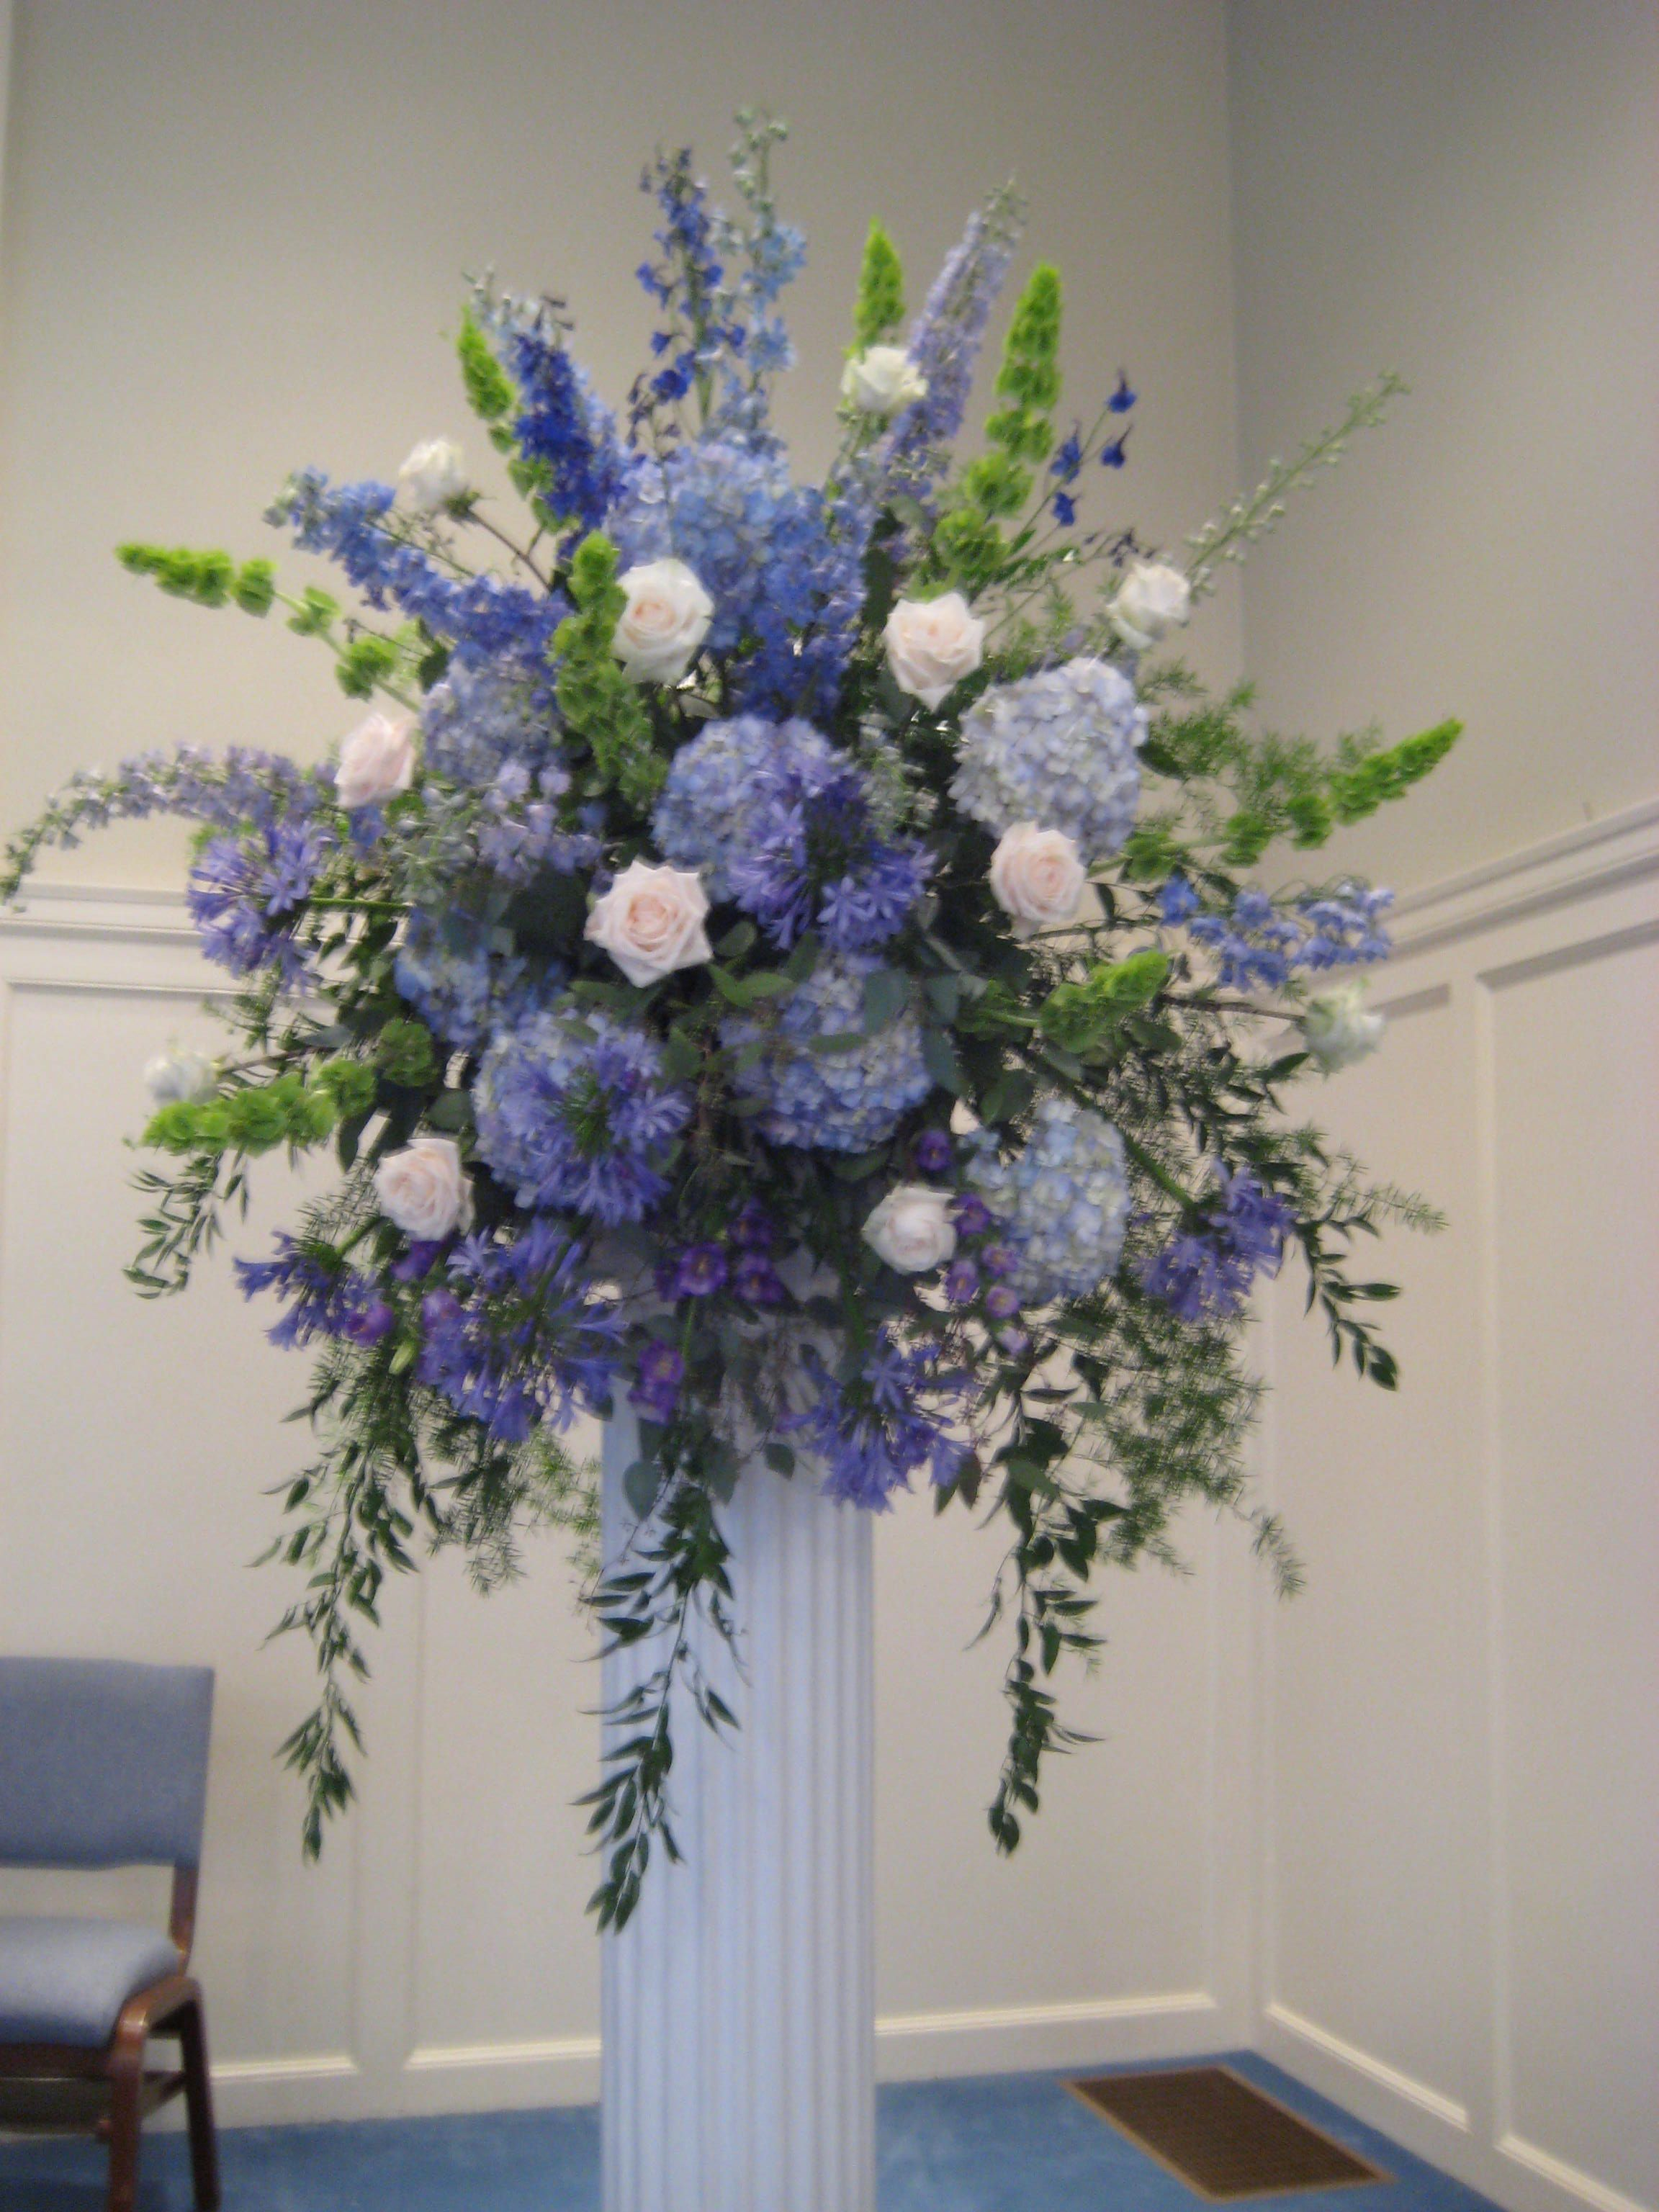 Hydrangea delphinium bells of ireland agapanthus blue for Floral arrangements for wedding reception centerpieces